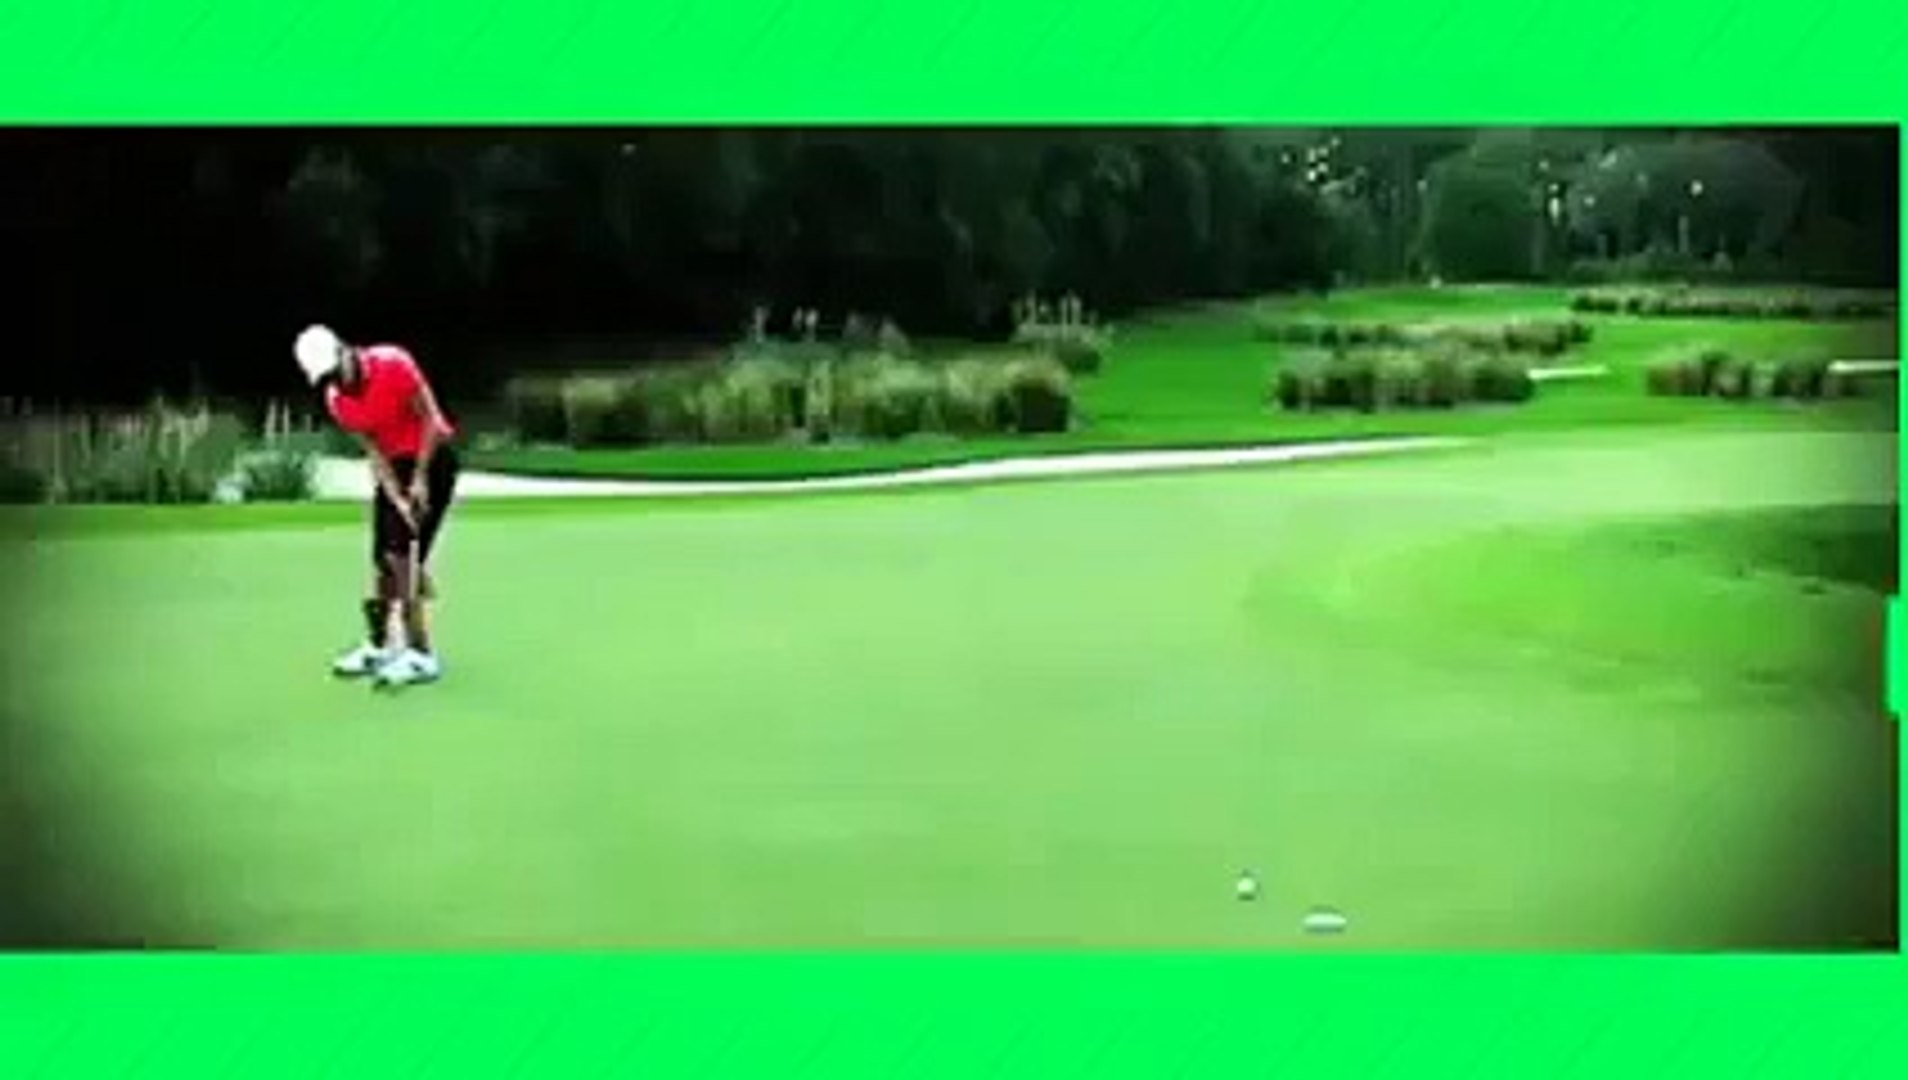 Watch south africa golf live - south africa golf - africa golf tour - africa golf